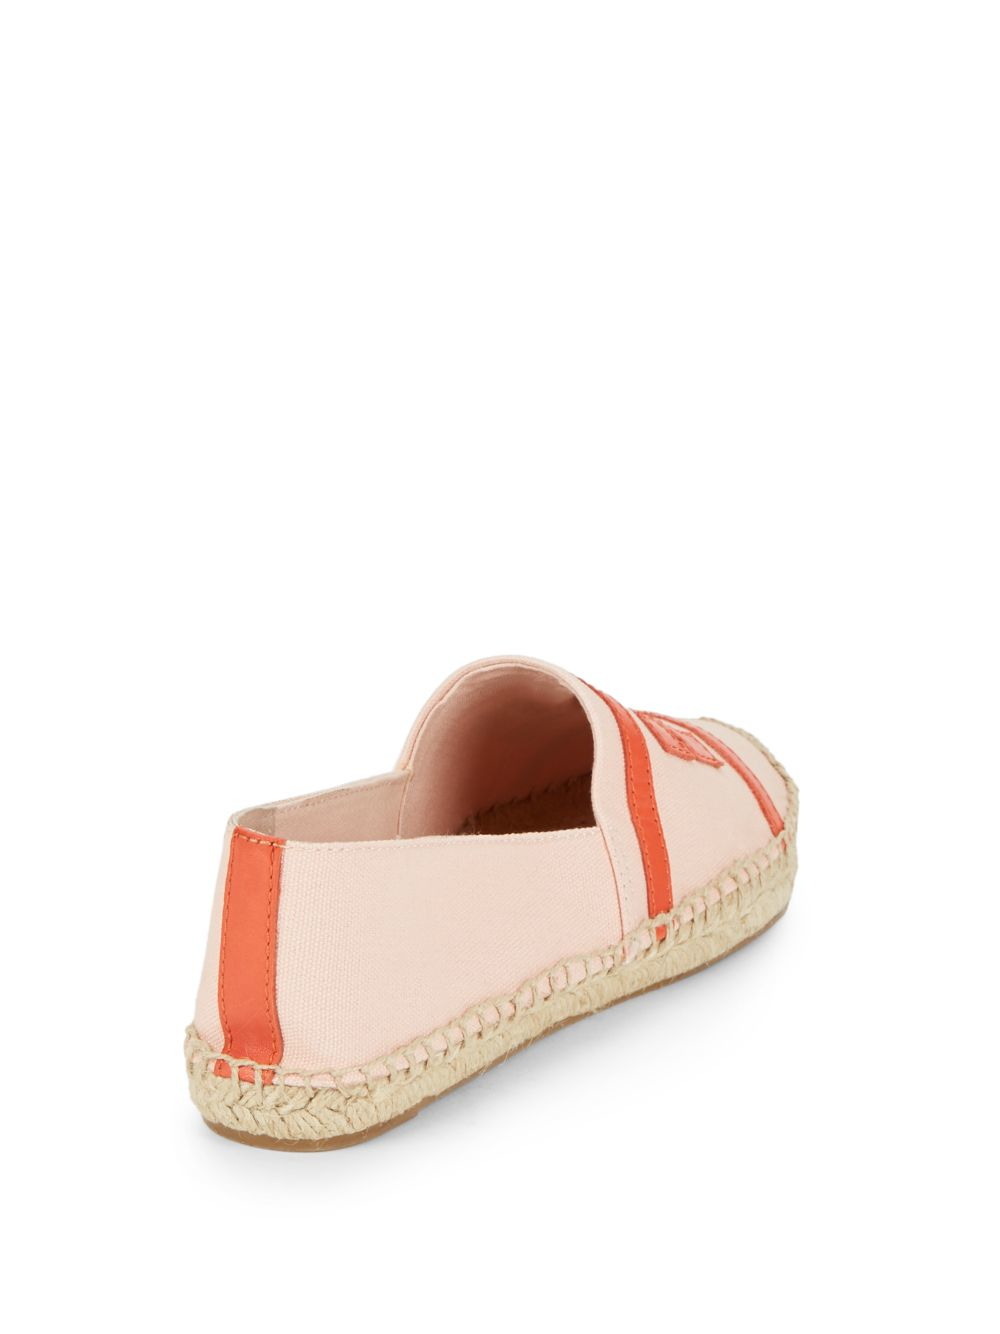 fef0d0d9778 Lyst - Tory Burch Double T Canvas Espadrille Flats in Pink